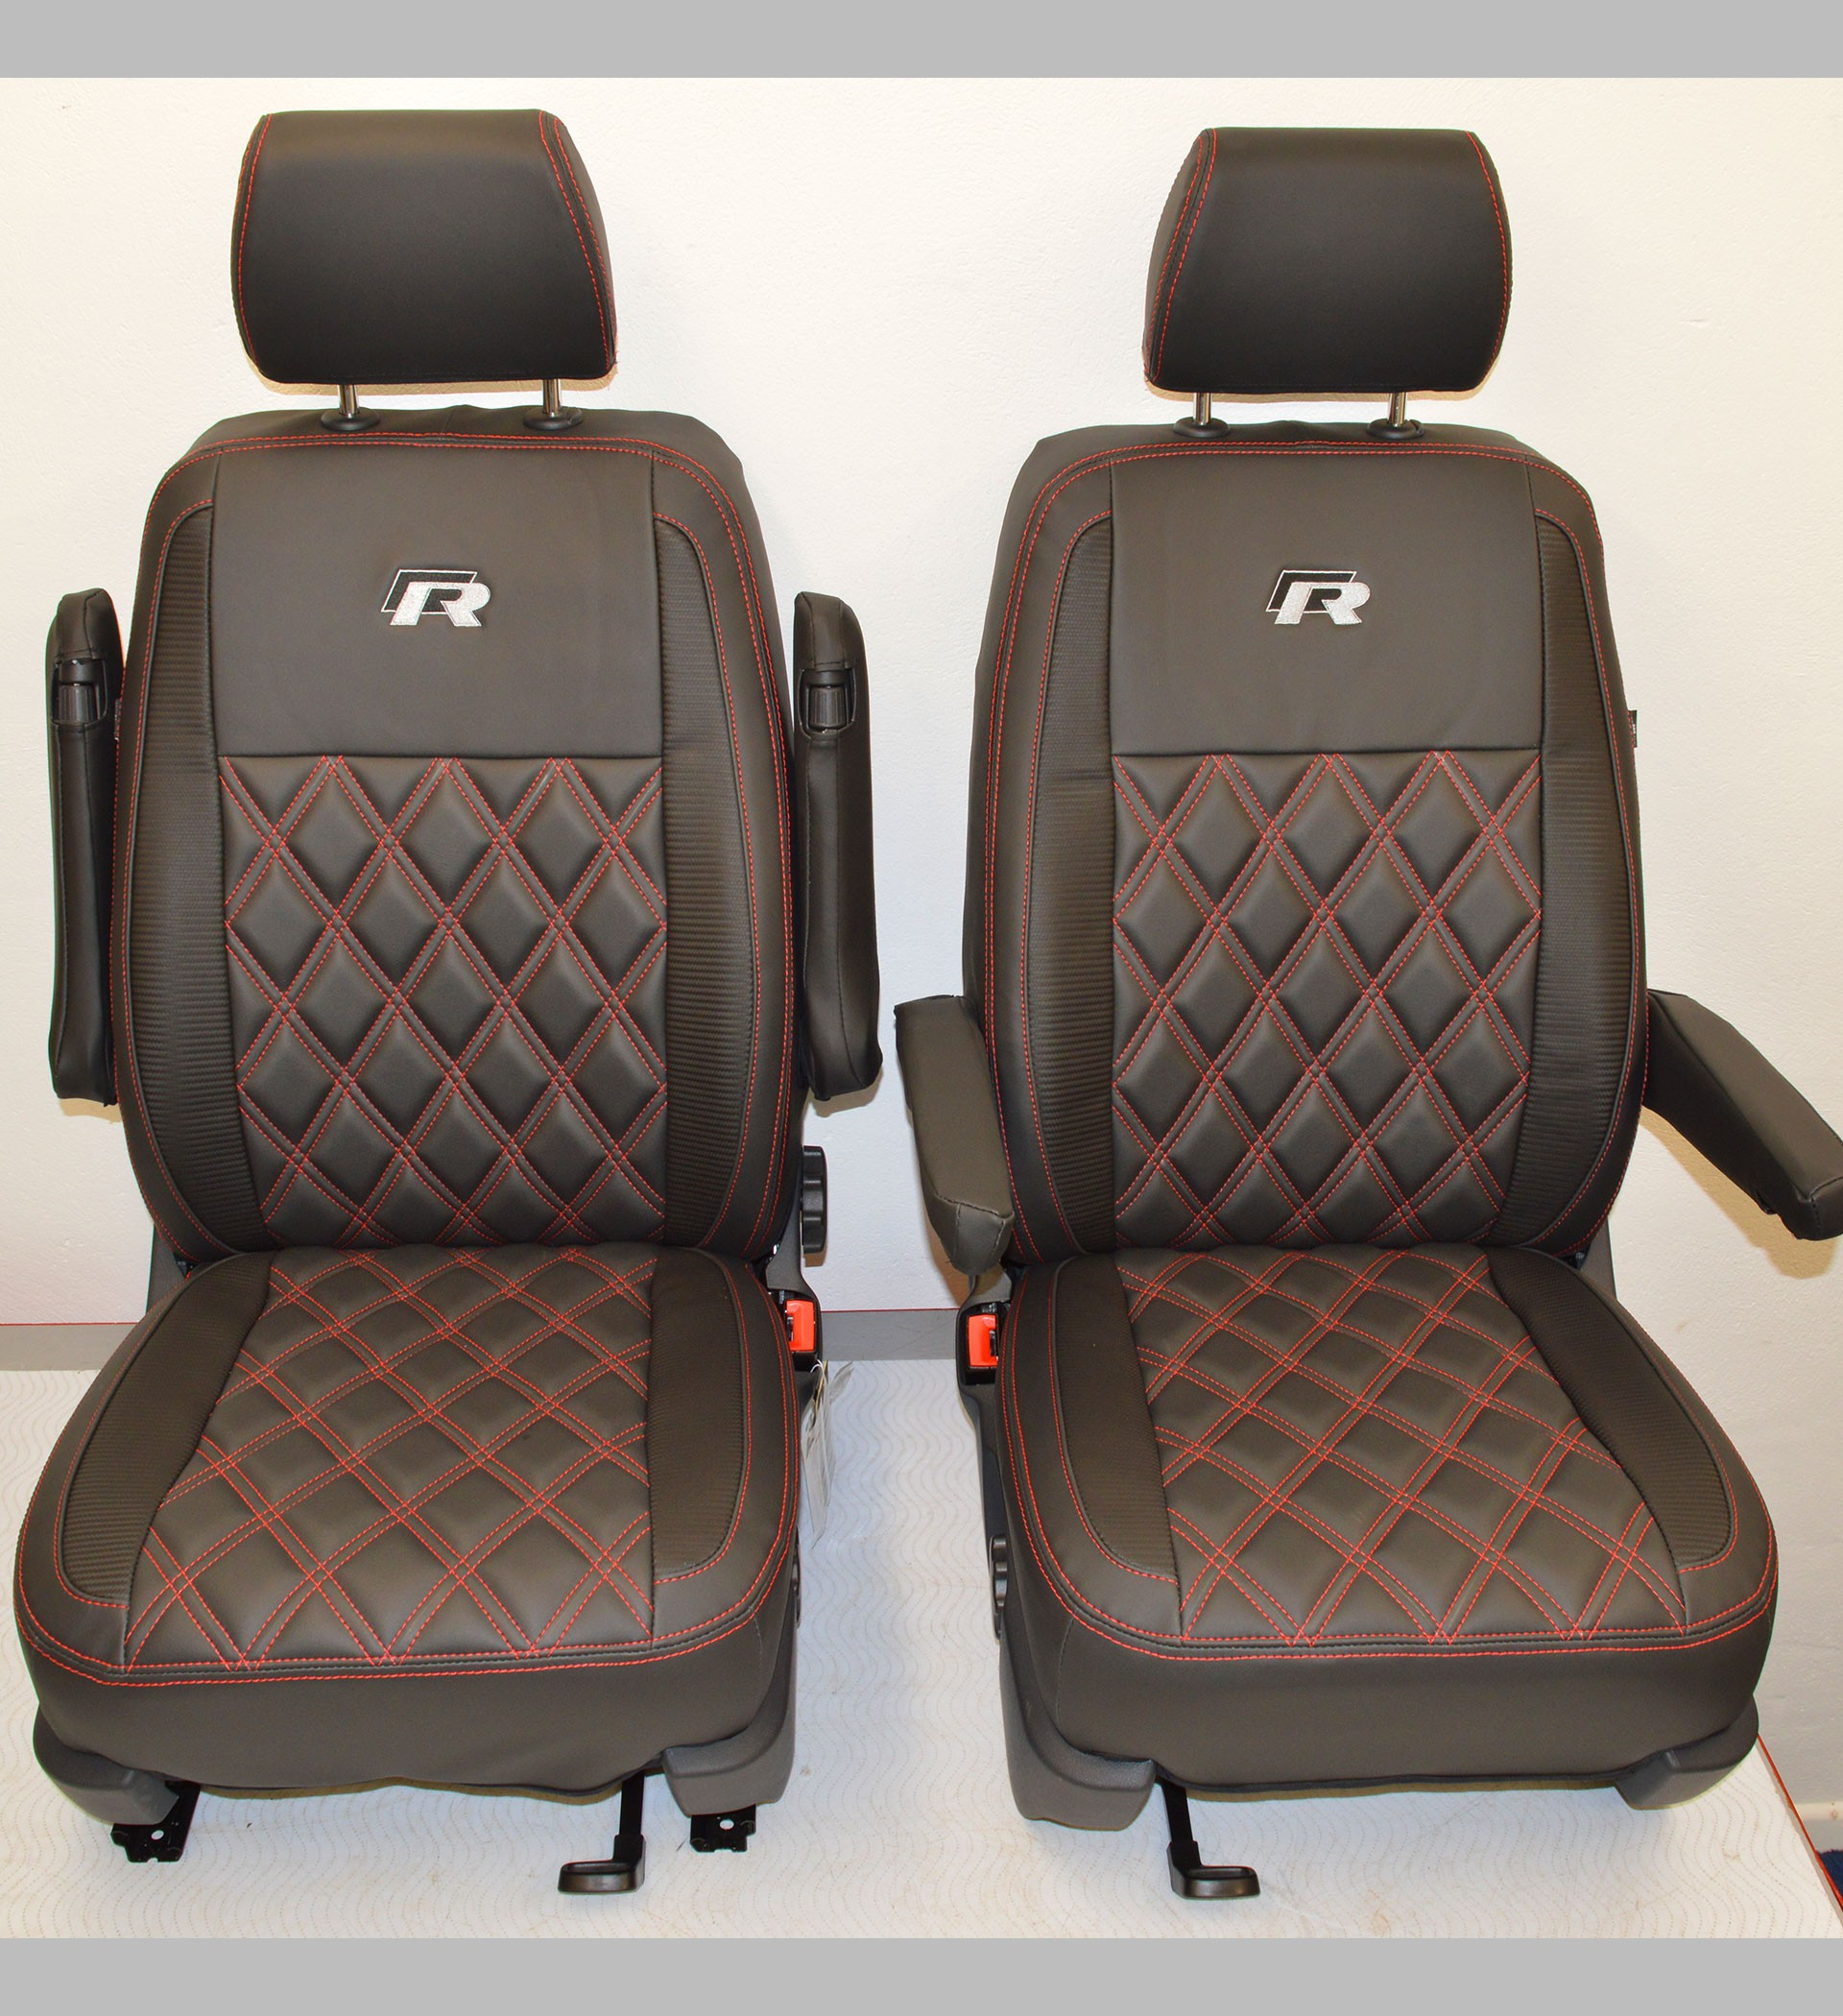 VW Transporter T5 R Line Tailored Seat Covers